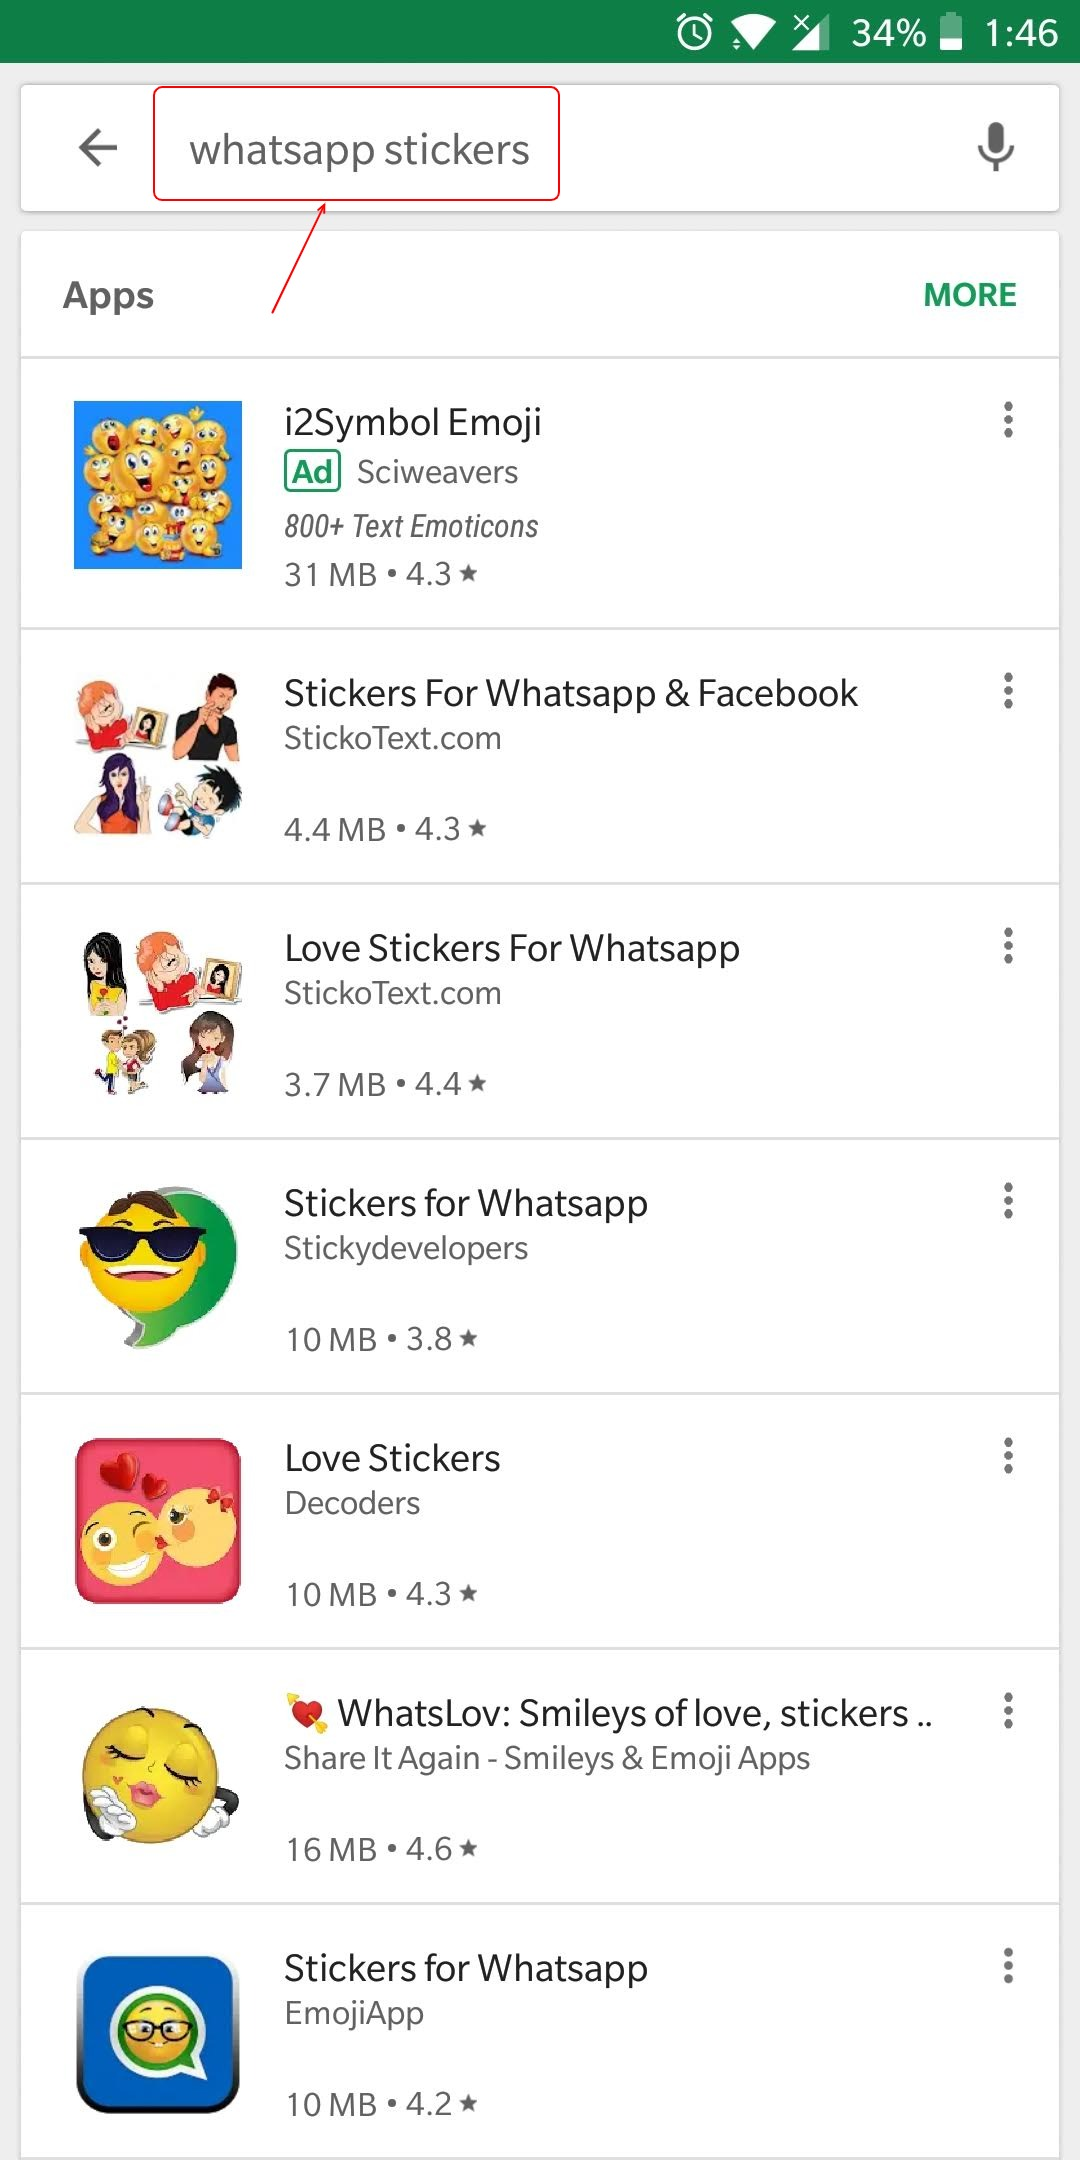 Stickers In Whatsapp Send Whatsapp Stickers In Whatsapp For Android Droidviews